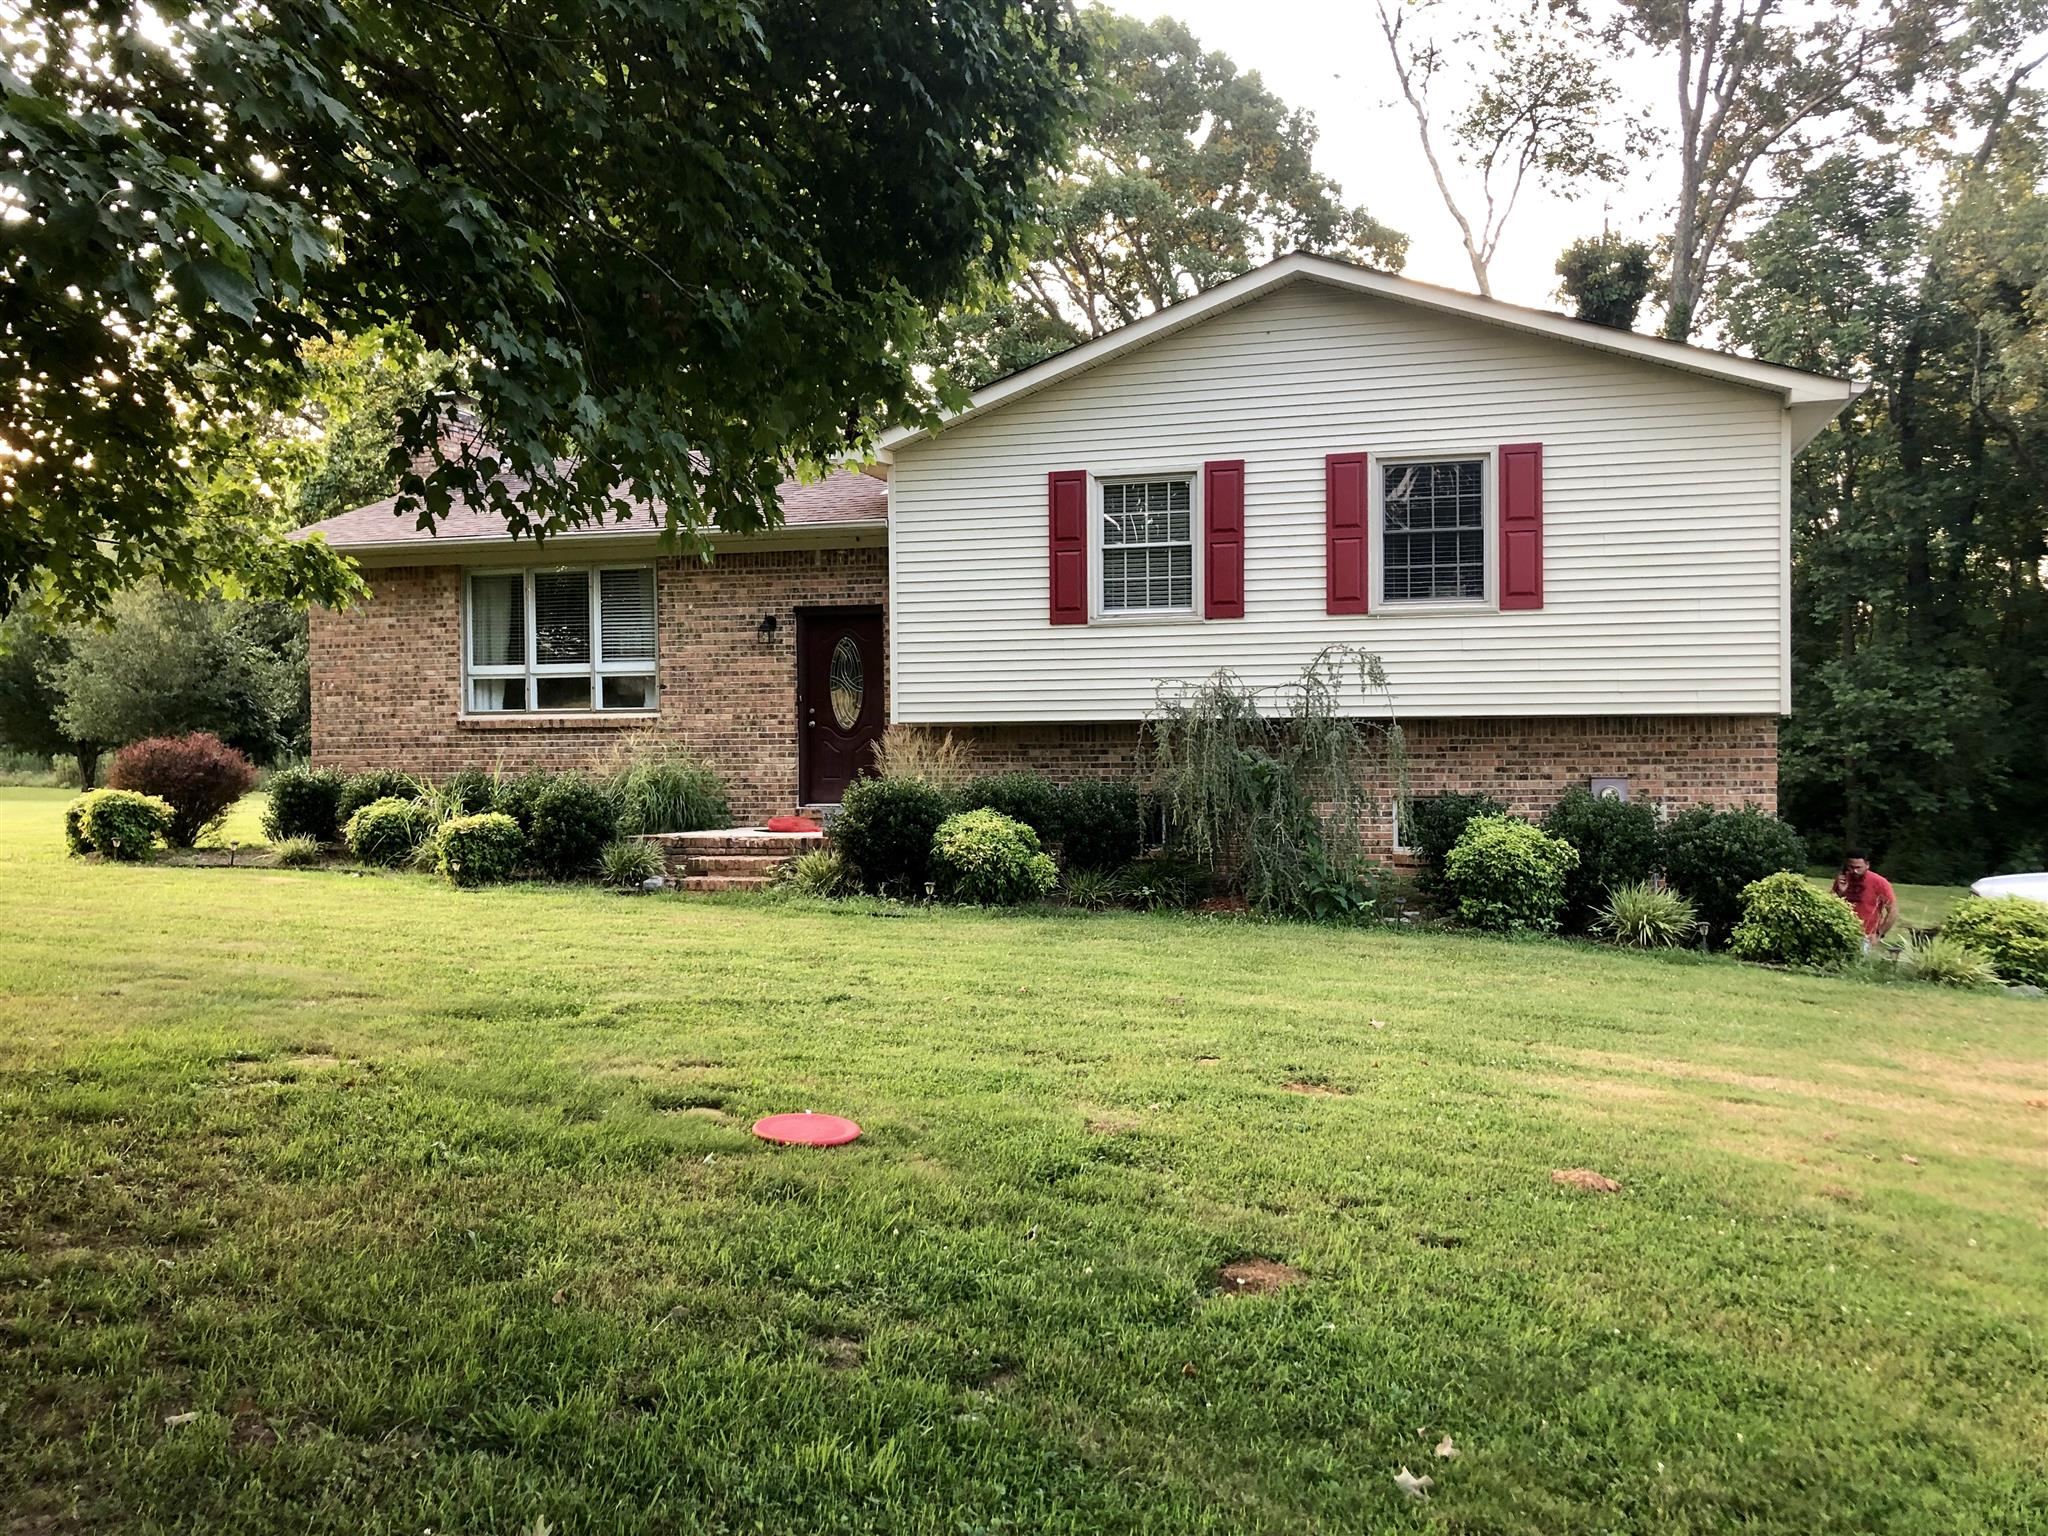 712 Blue Springs Rd, Smithville, TN 37166 - Smithville, TN real estate listing